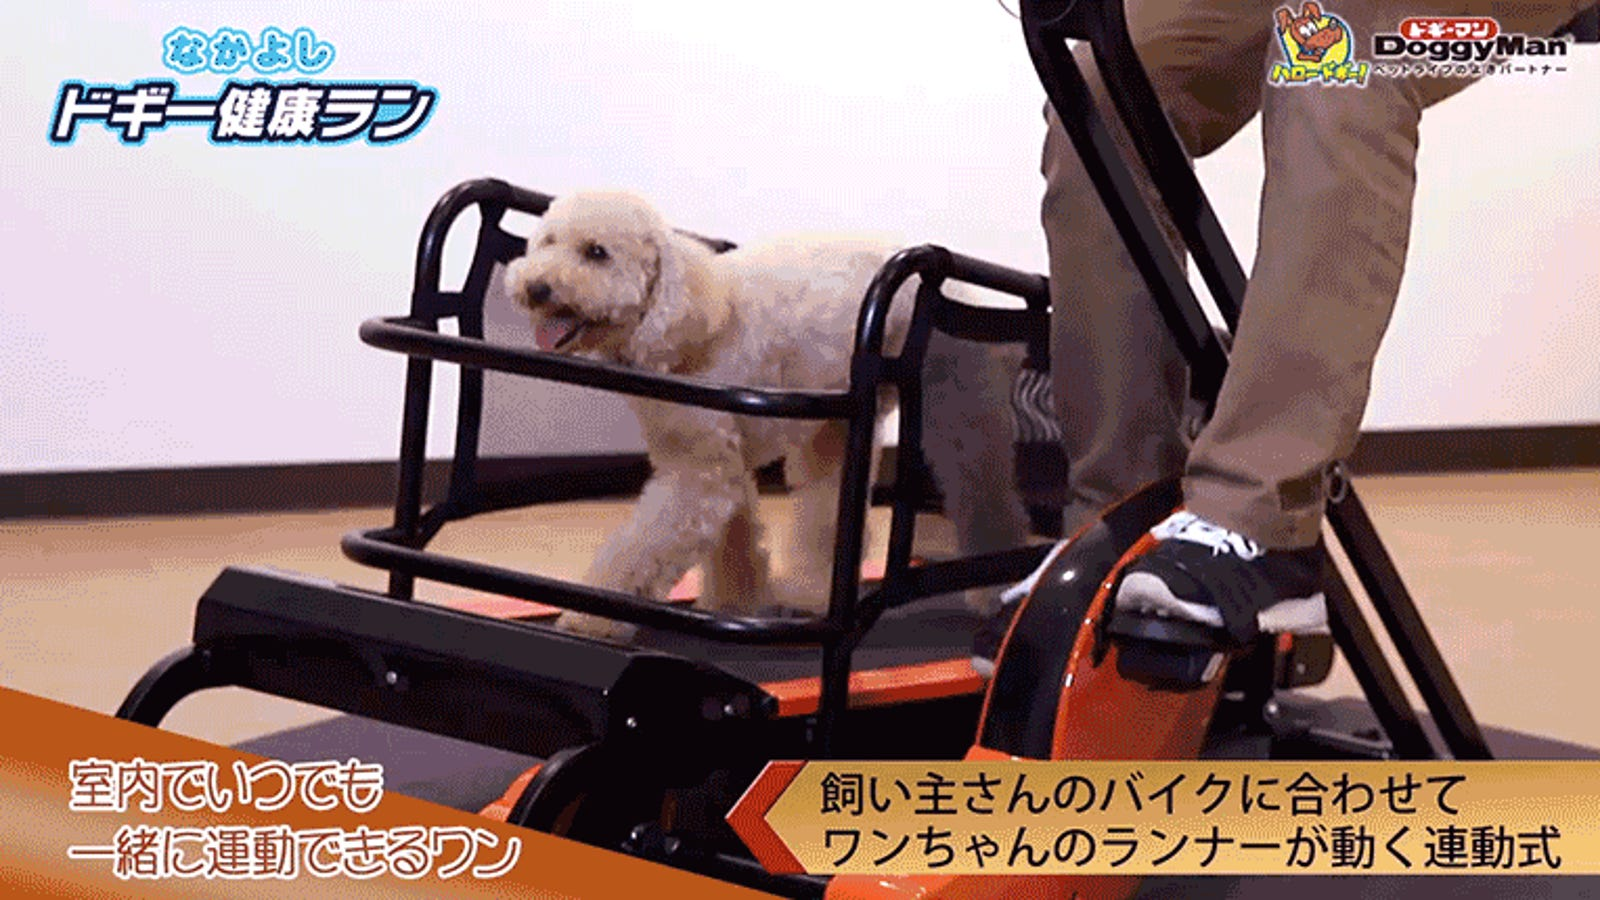 Pedalling This Exercise Bike Gives Your Dog a Workout Too